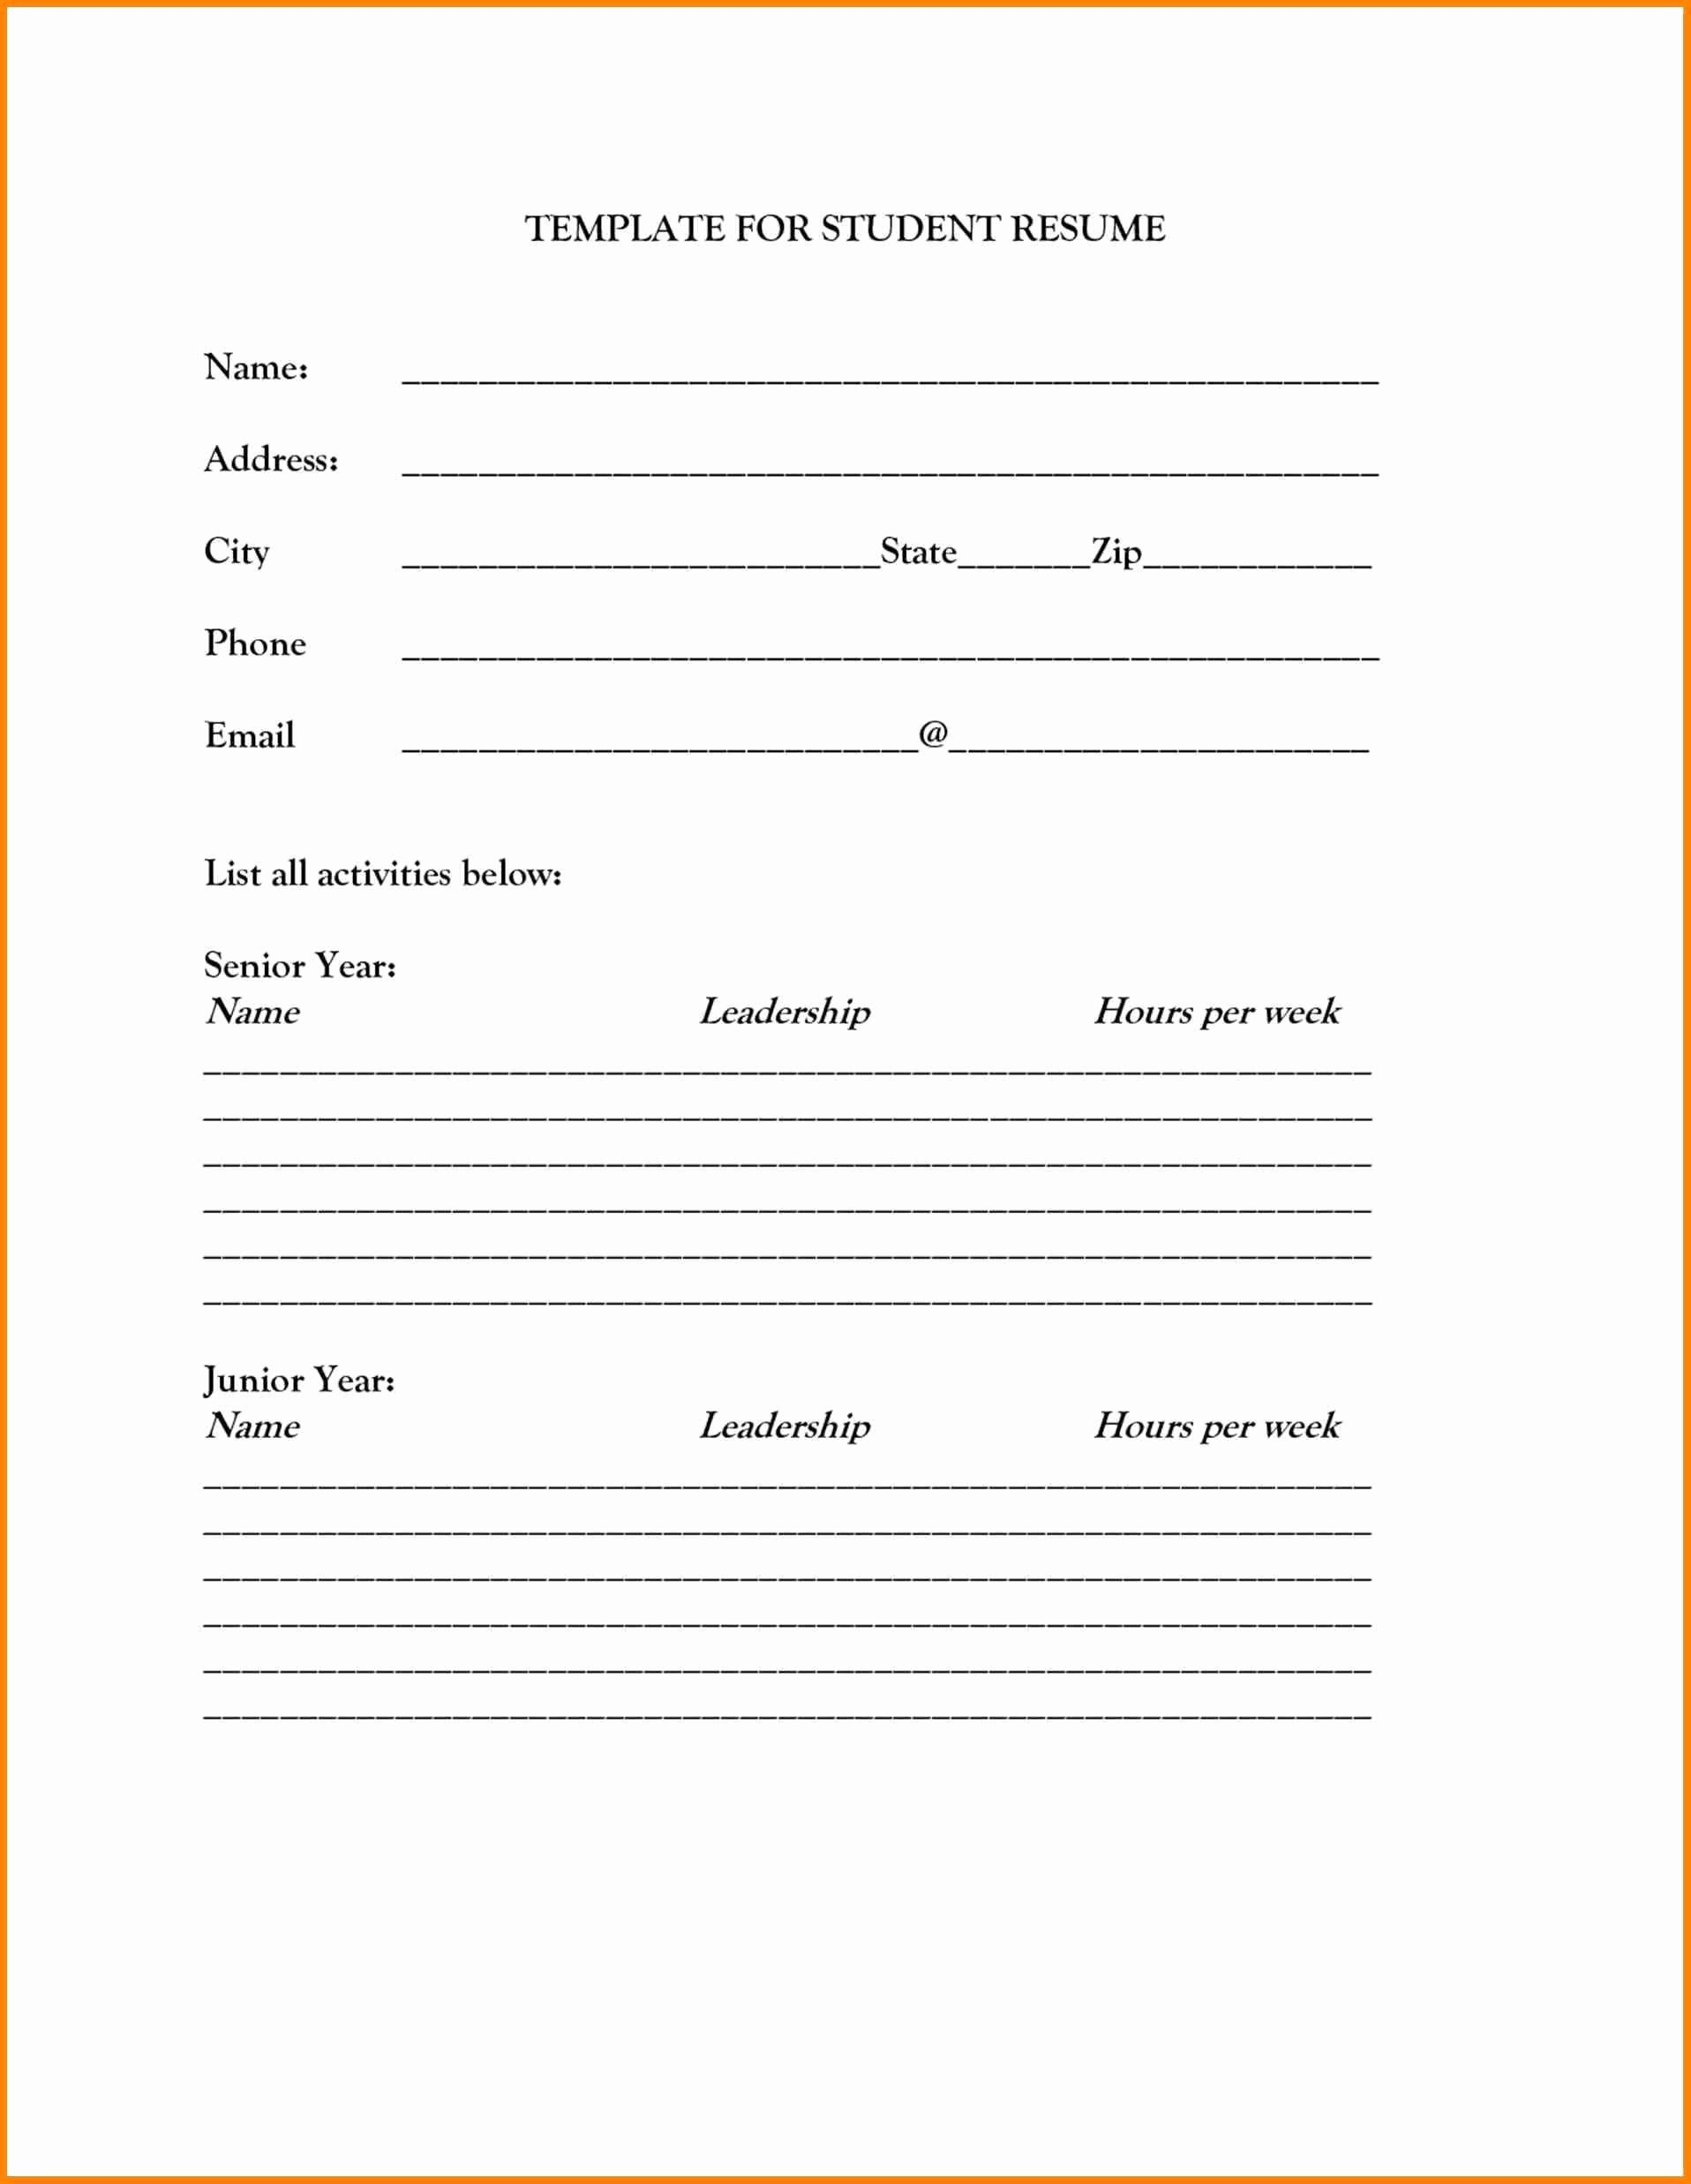 43+ Printable blank resume templates for free ideas in 2021